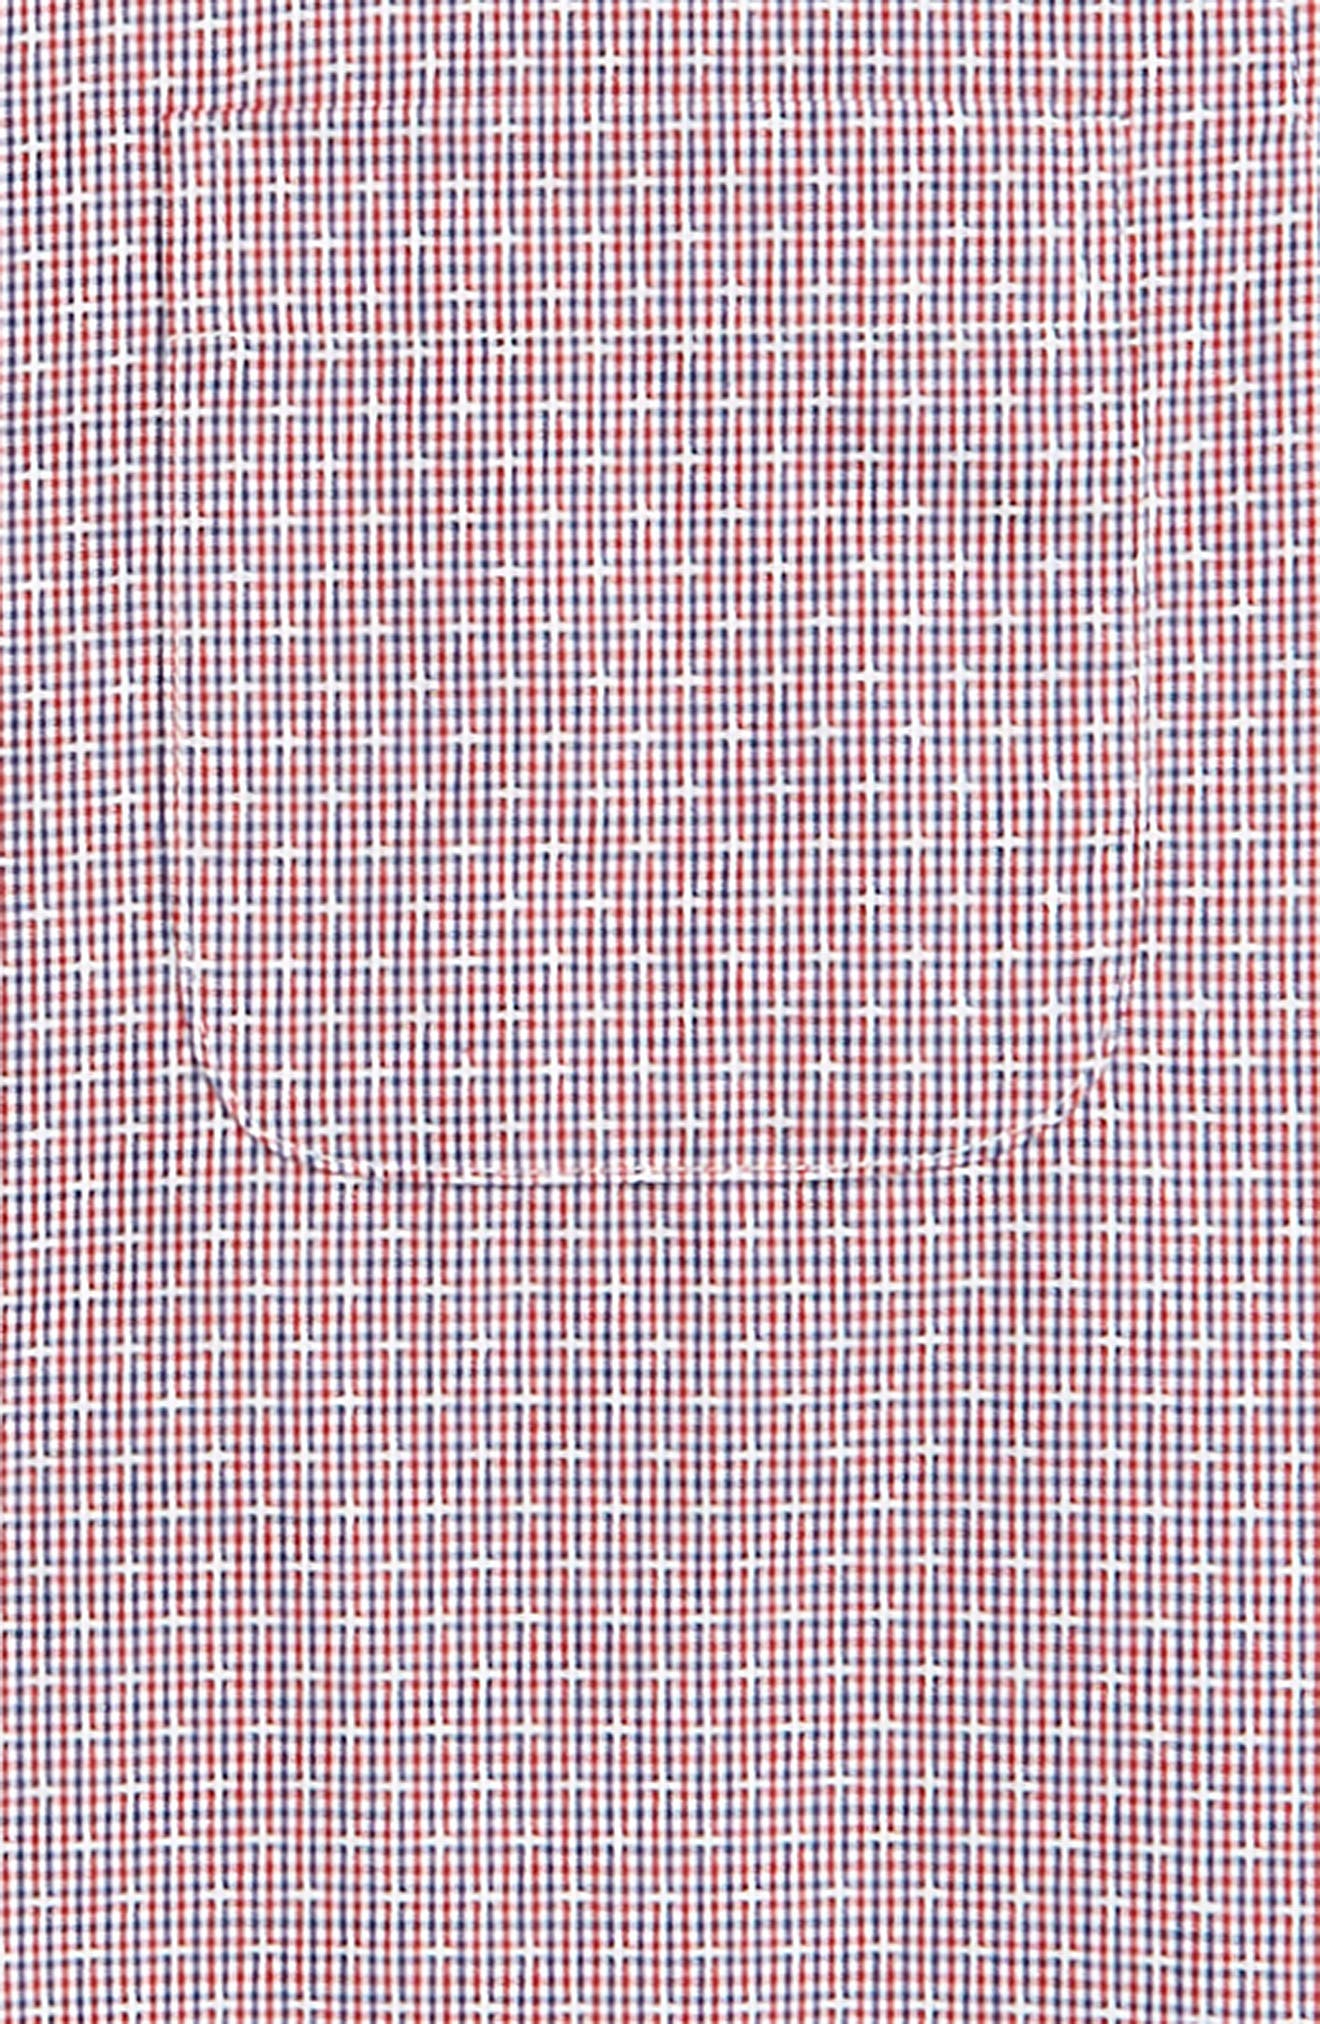 Check Dress Shirt,                             Alternate thumbnail 2, color,                             Red Sage- Navy Check